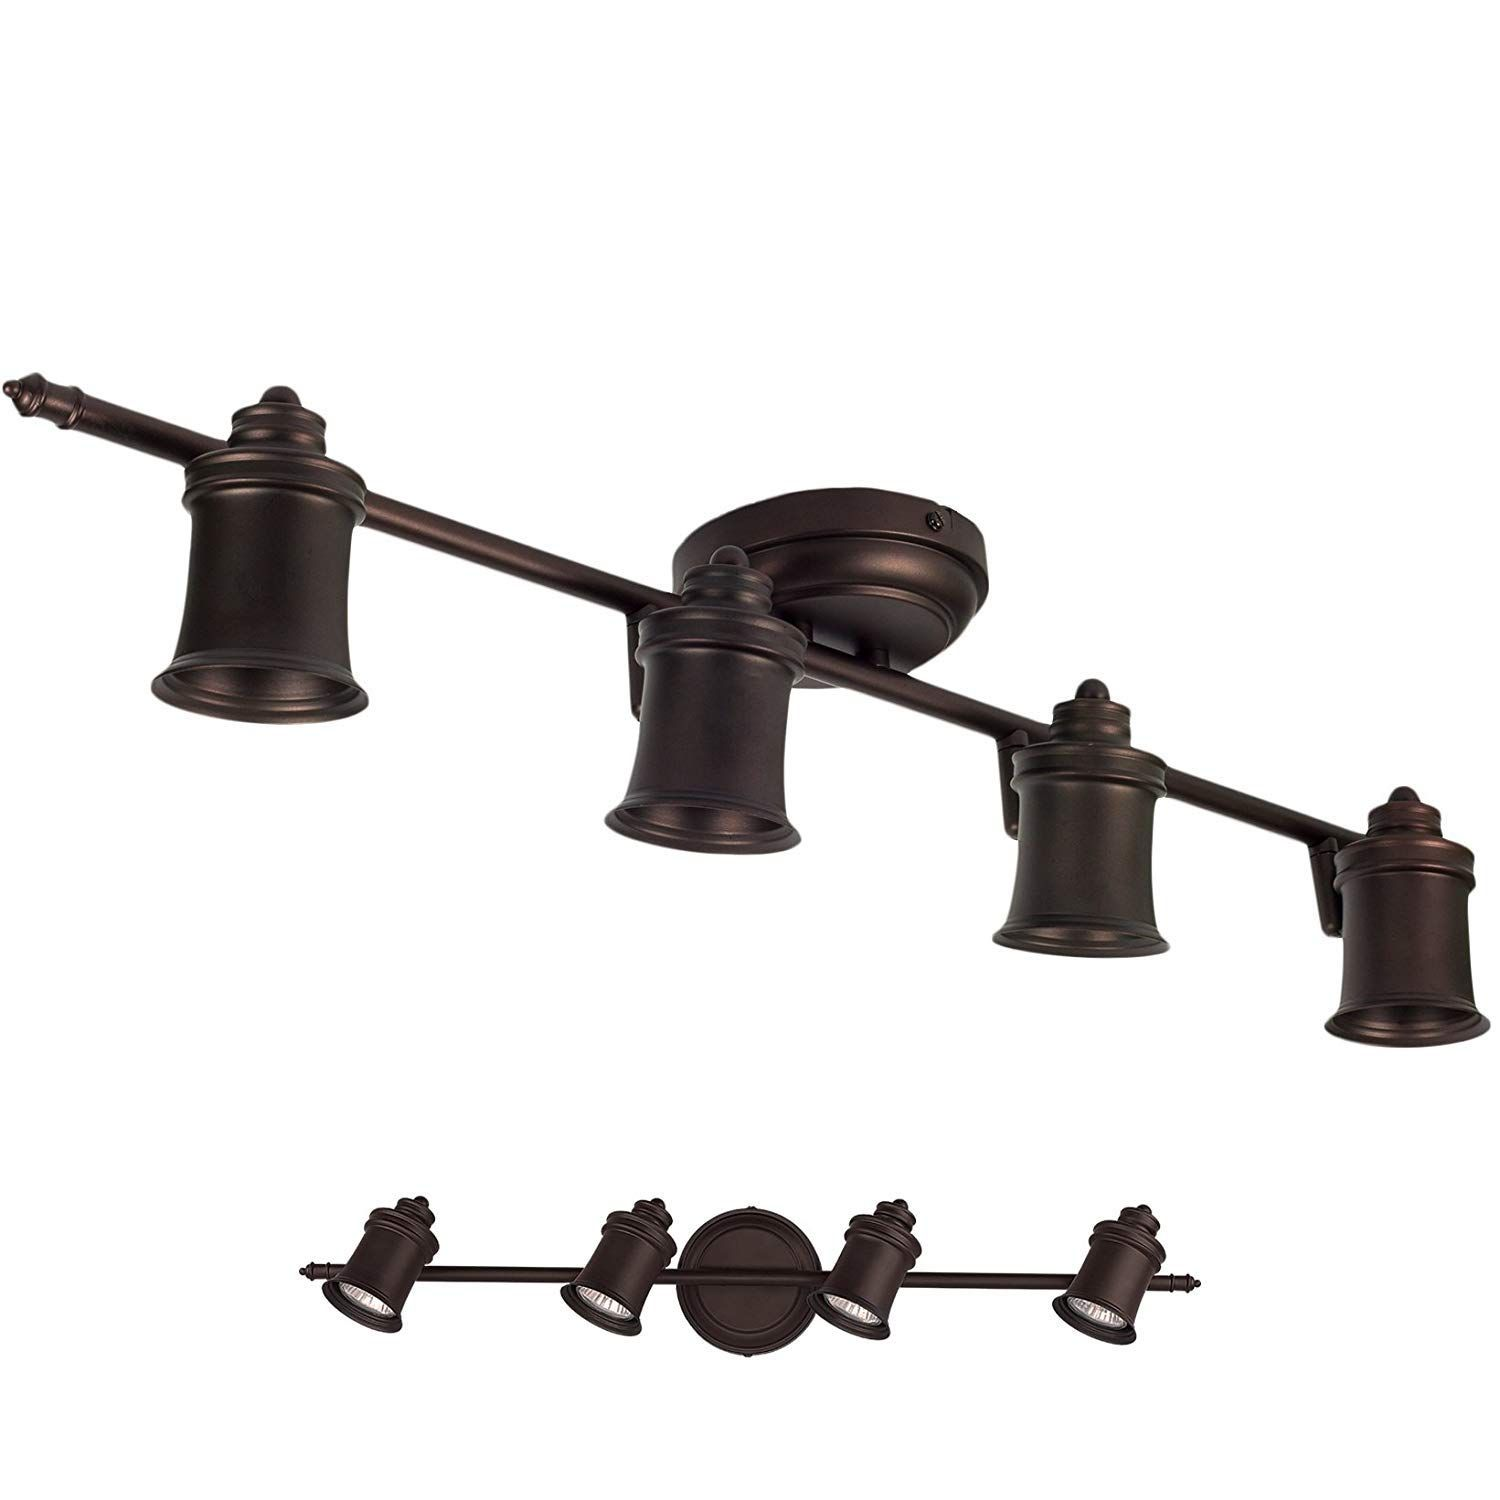 Best Rustic Track Lighting Fixtures For Sale We Love Farmhouse Track Lighting And Indust In 2020 Track Lighting Fixtures Track Lighting Kitchen Ceiling Mount Fixtures